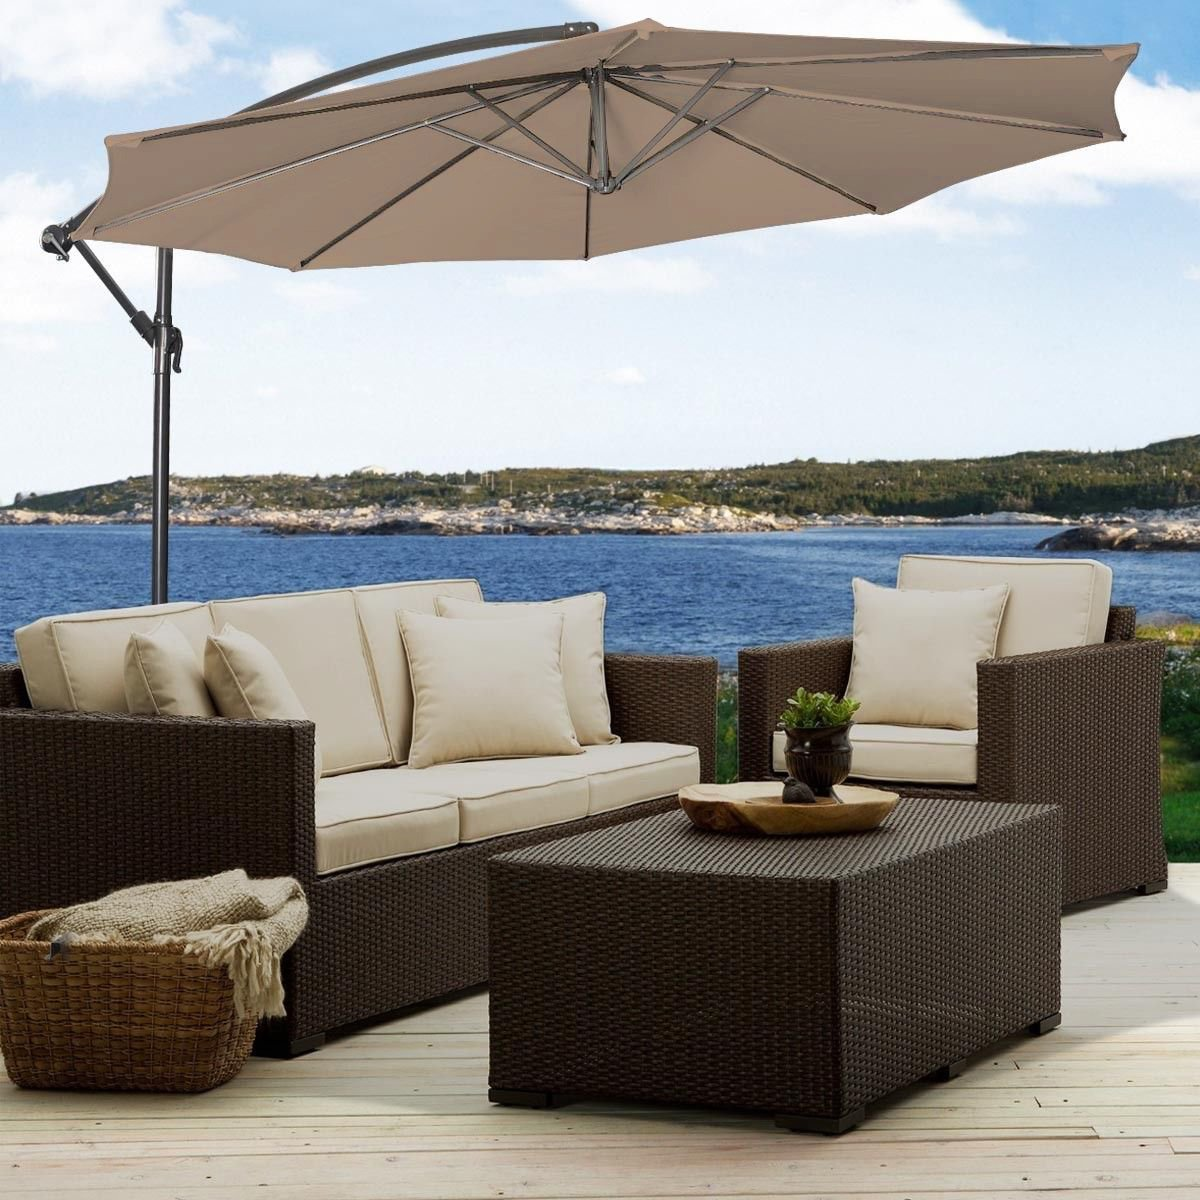 offset style inspiration umbrellas ashery umbrella patio design home base brilliant